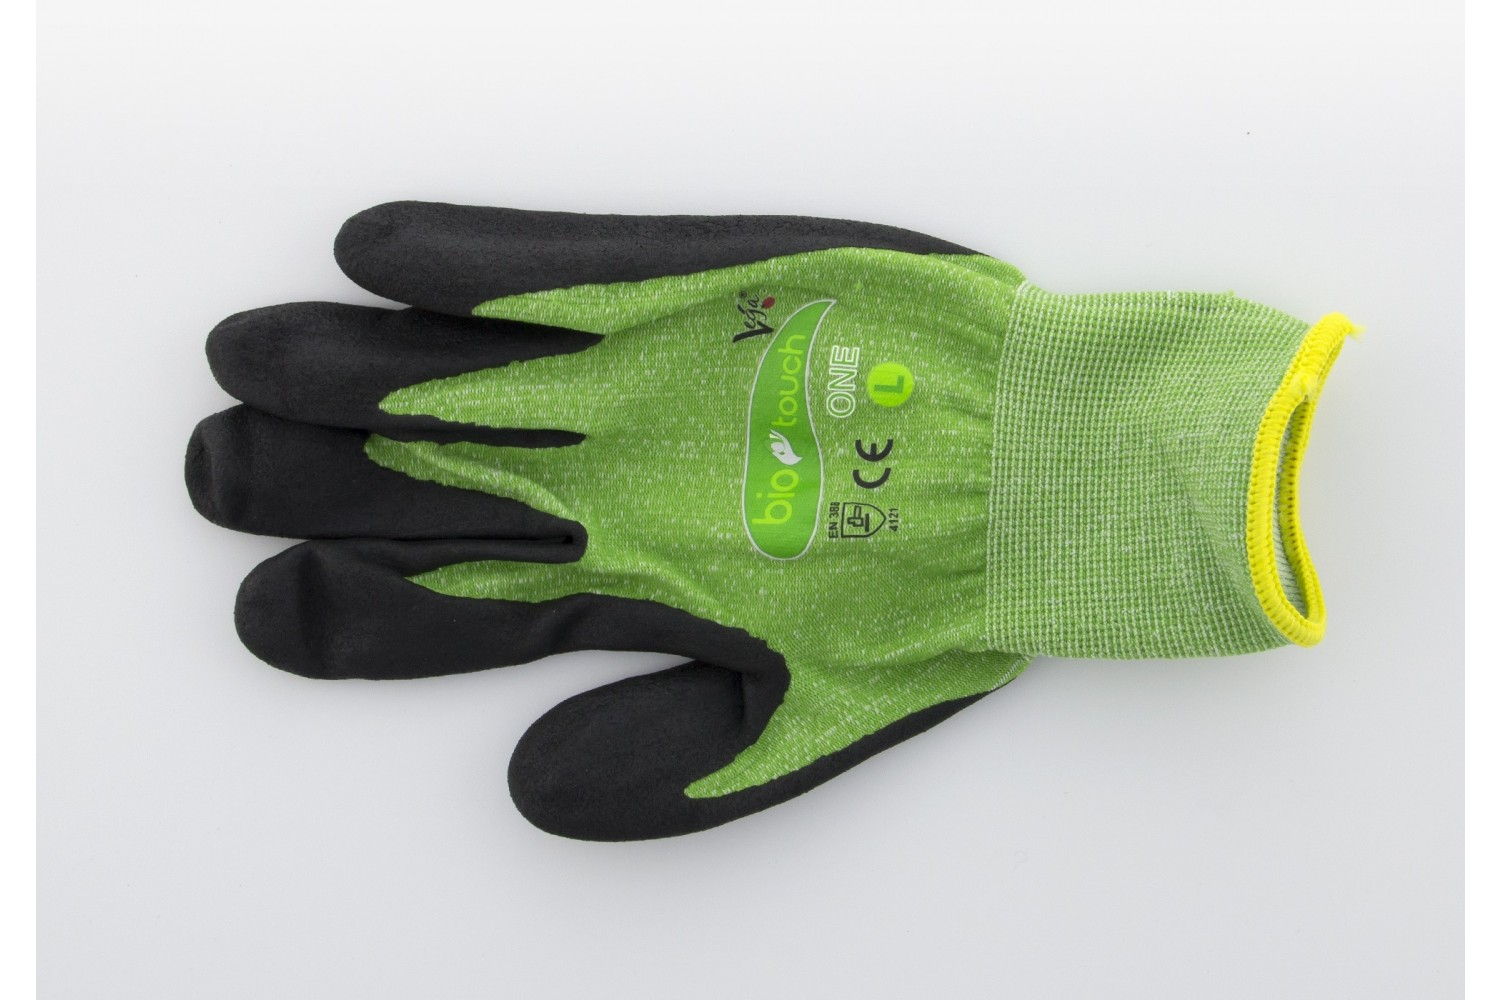 VEGA work gloves